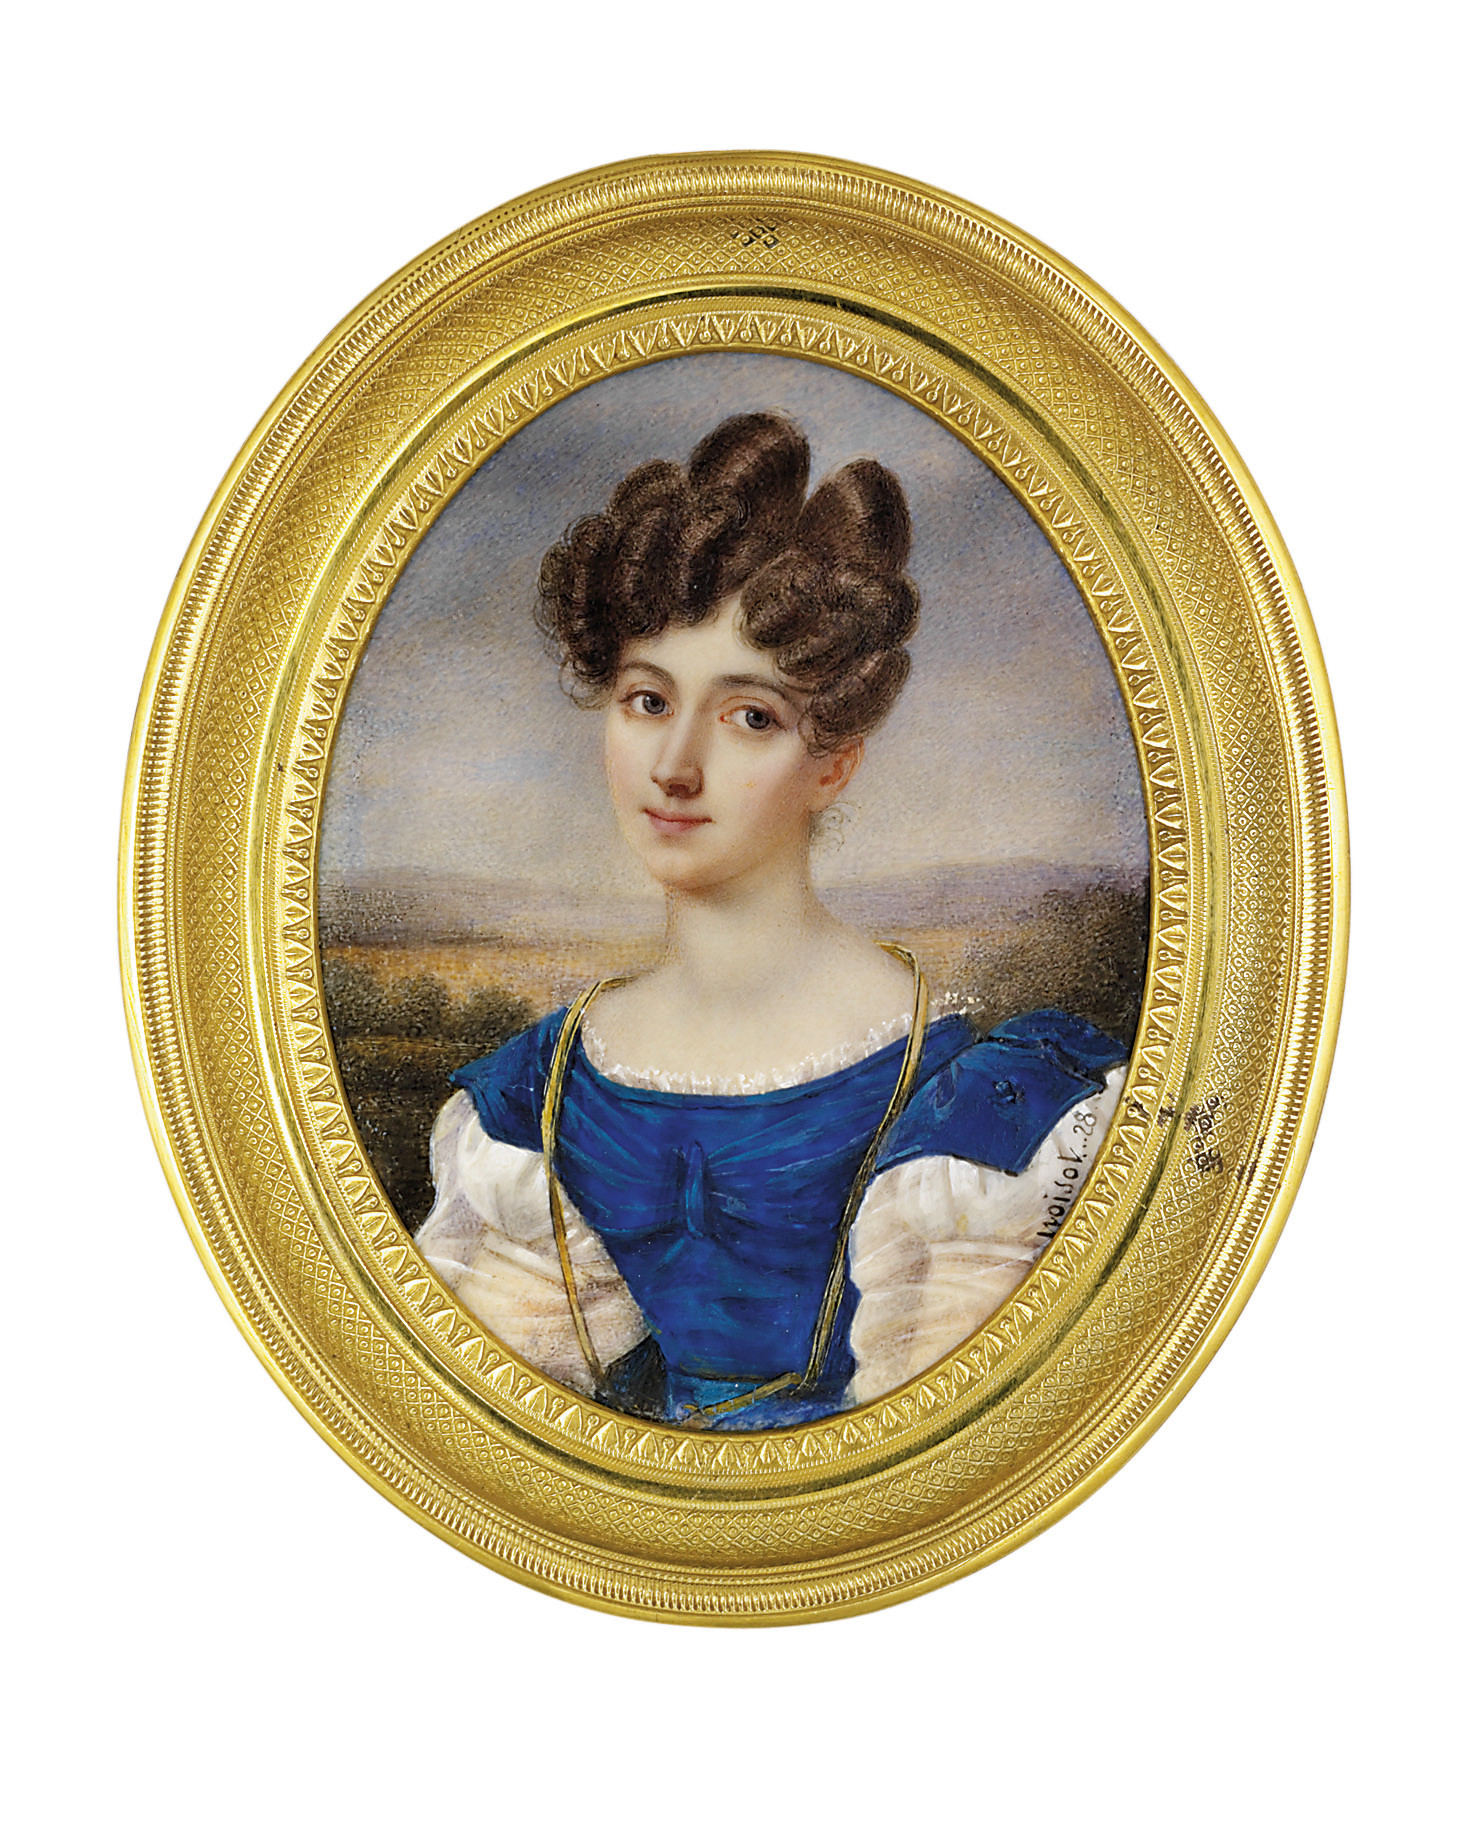 A young lady, in dress with blue velvet bodice and shoulder wings and white gauze sleeves, white shift, long gold necklace, upswept curling brown hair; sky and landscape background